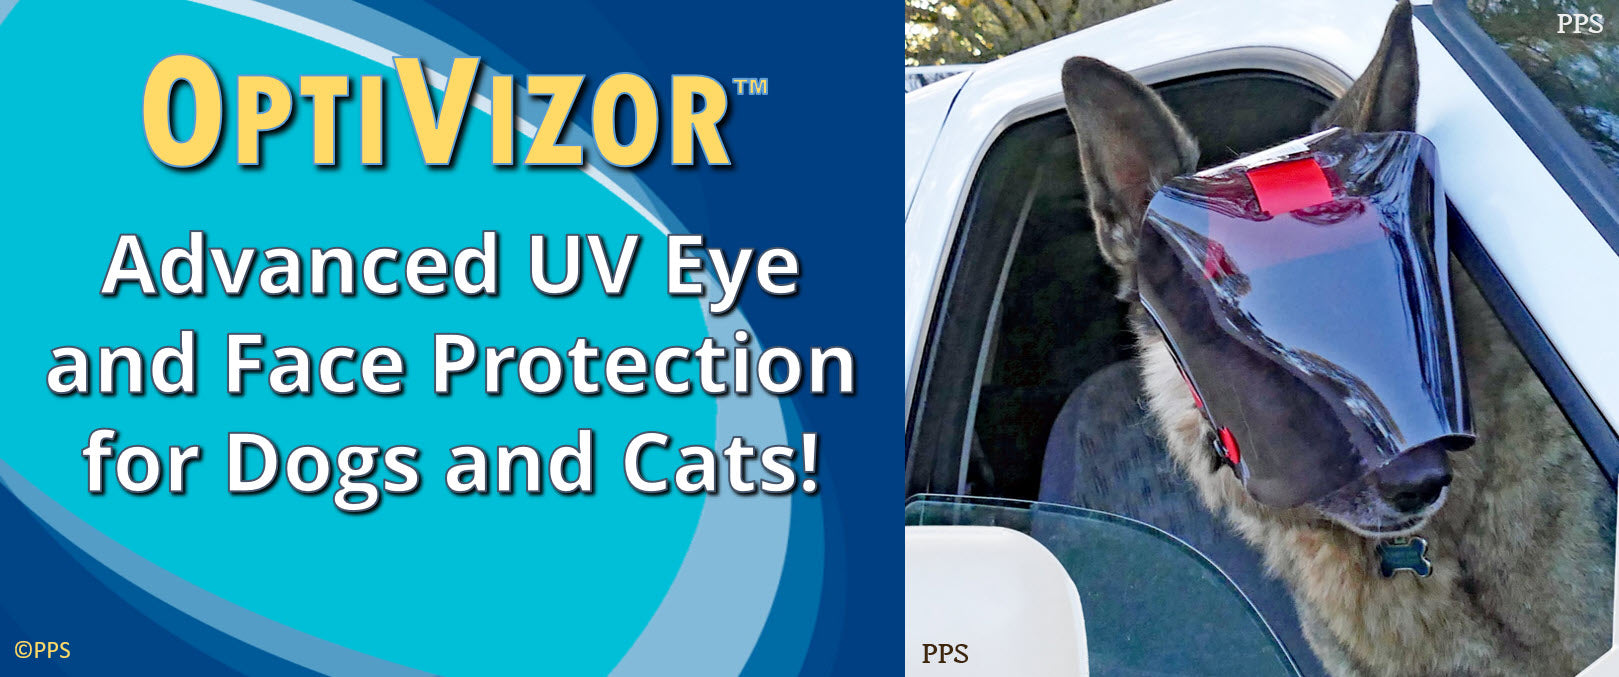 OptiVizor Dark UV Tint for Dogs and Cats